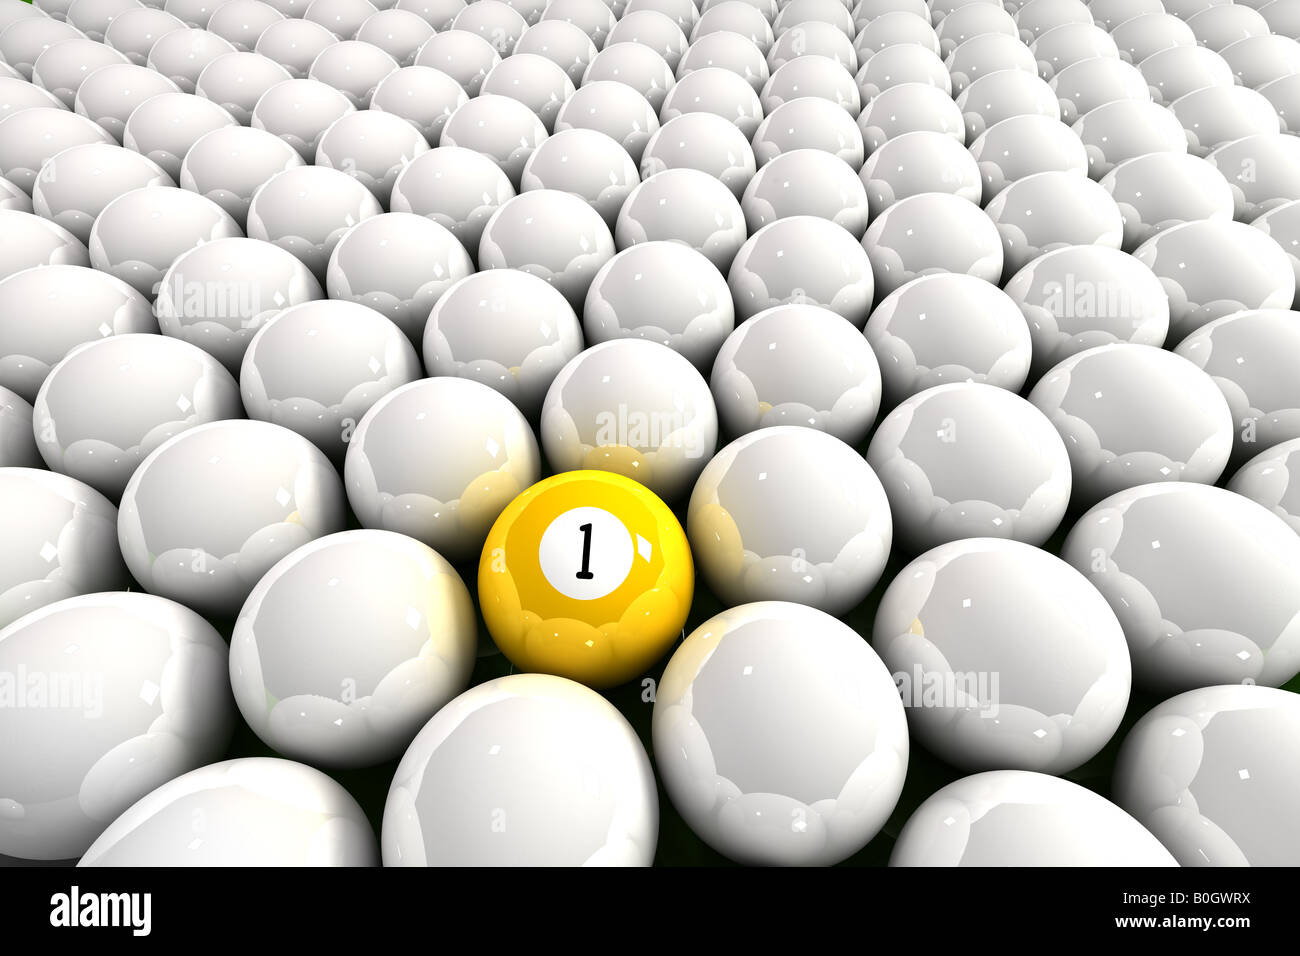 Yellow one ball surrounded by white billiard balls - Stock Image